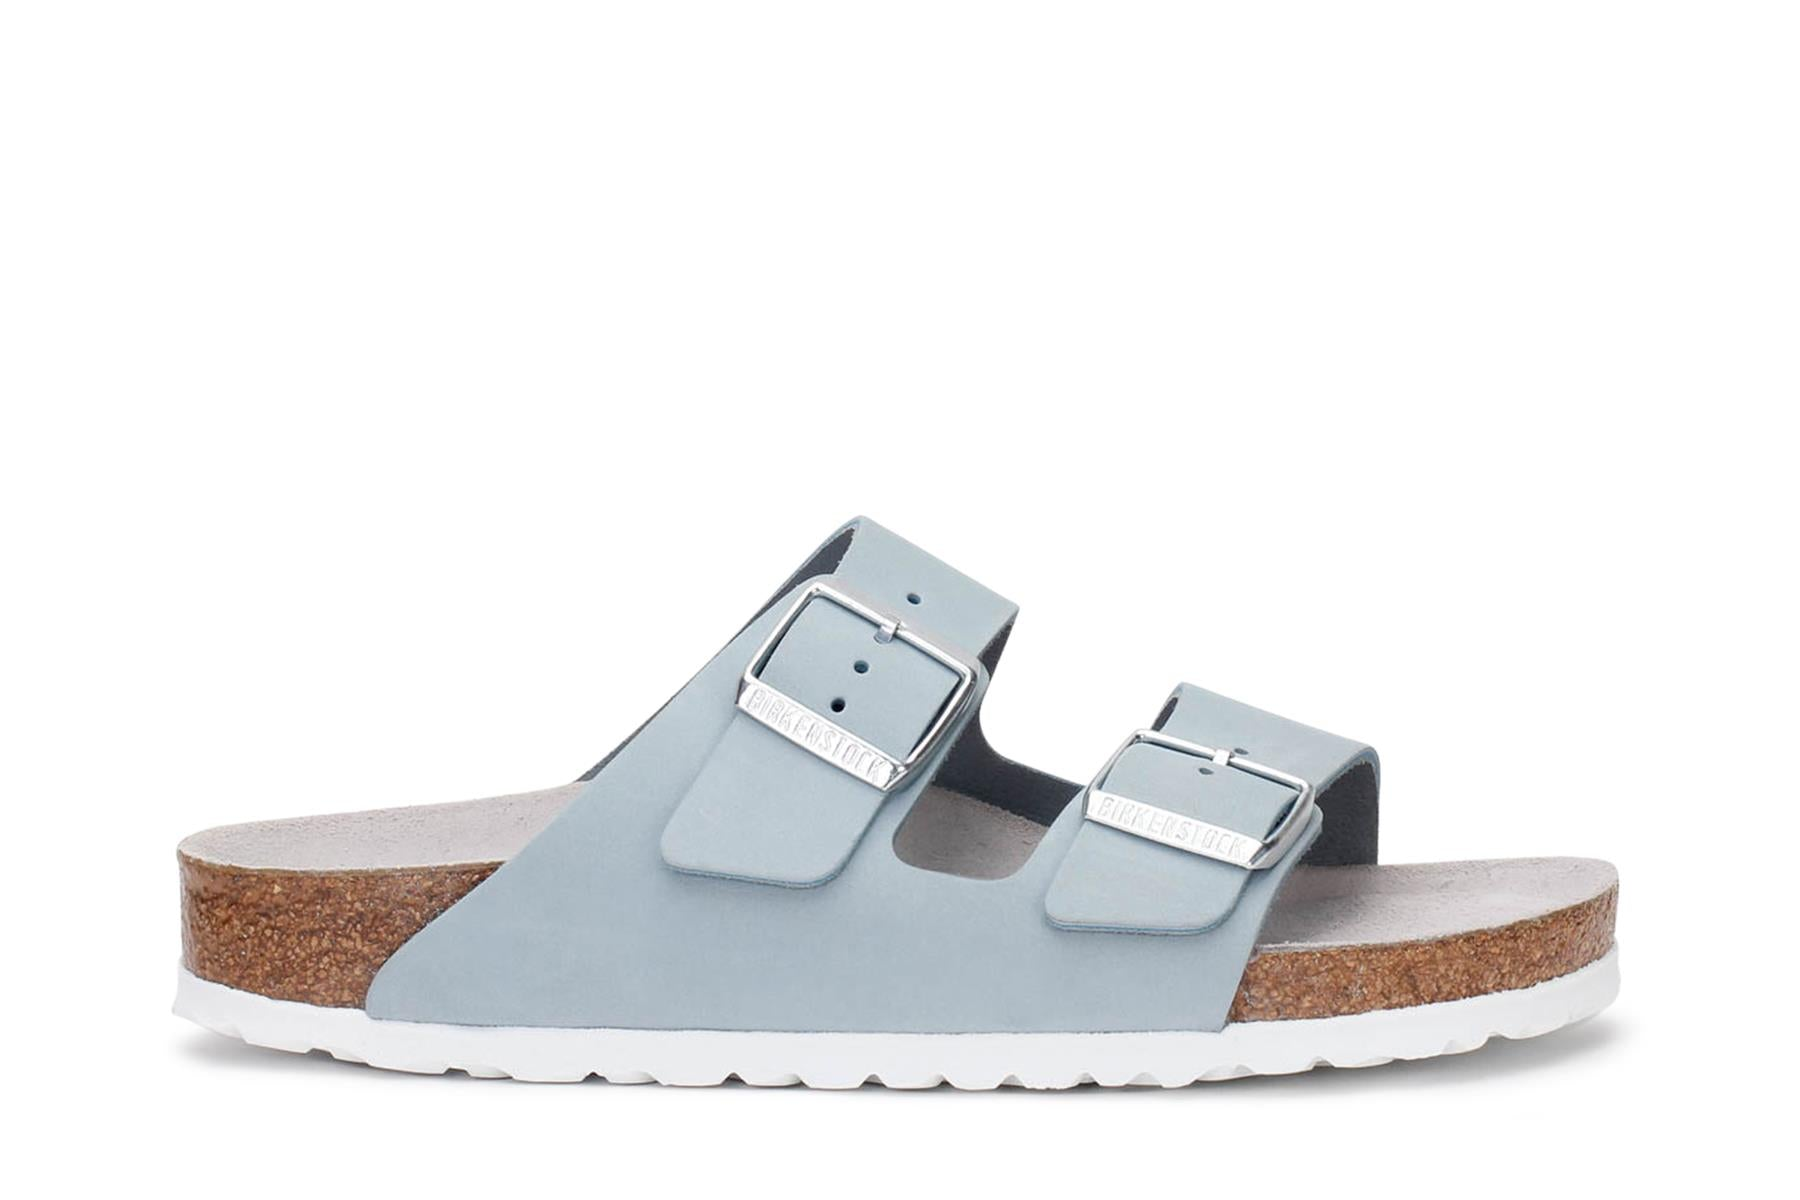 birkenstock-womens-sandals-arizona-bs-sky-1014059-main